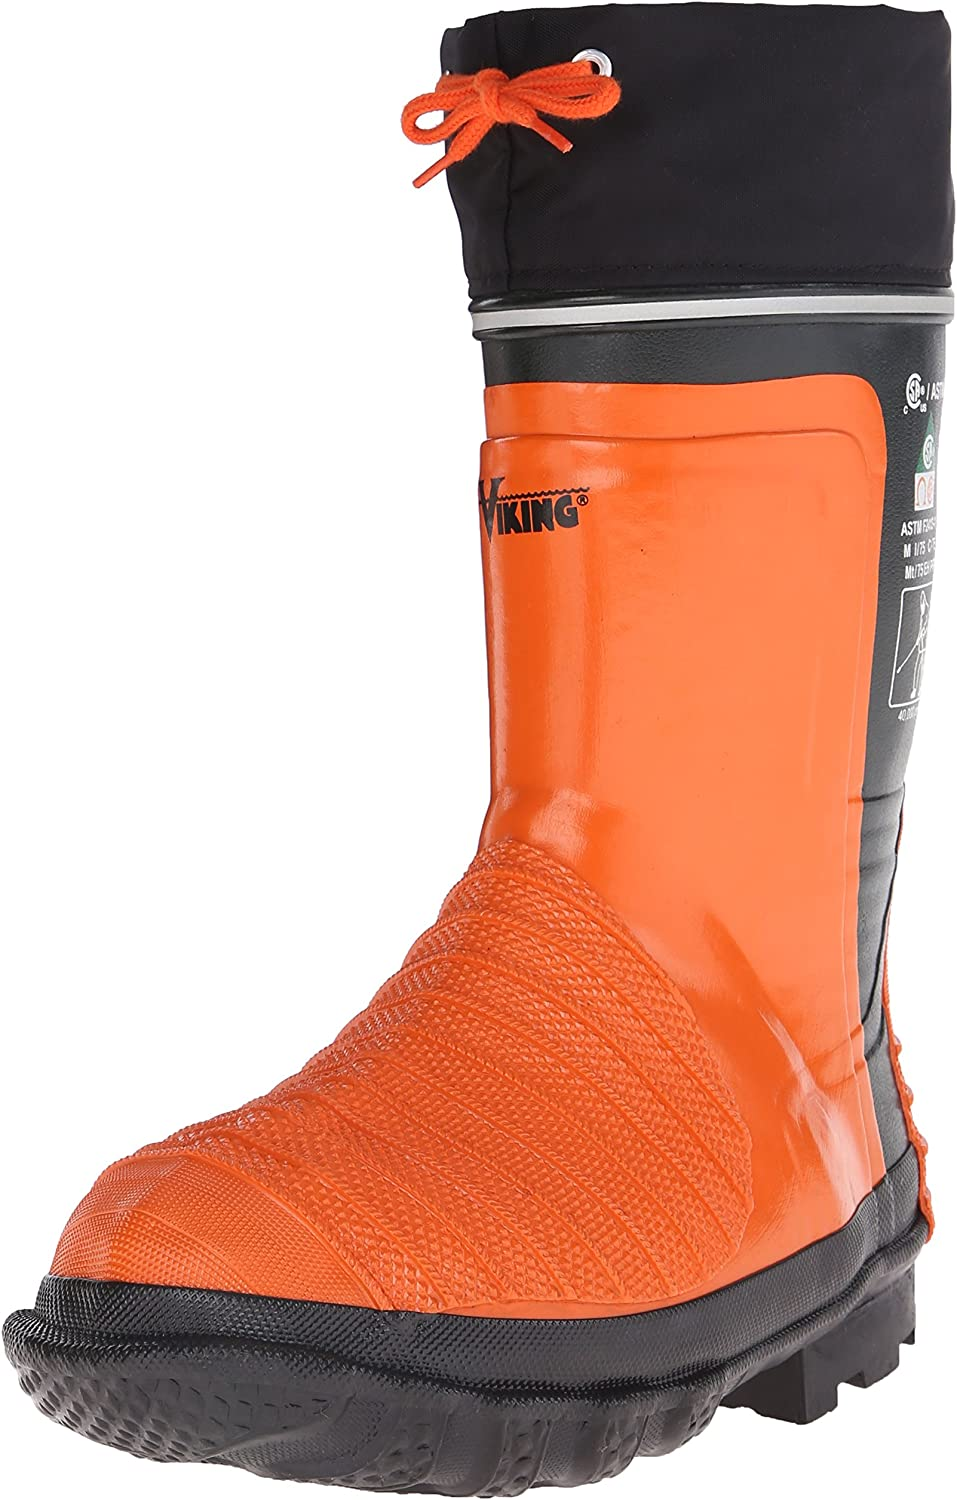 Daily bargain Fees free!! sale Viking Men's Water Boots Jet